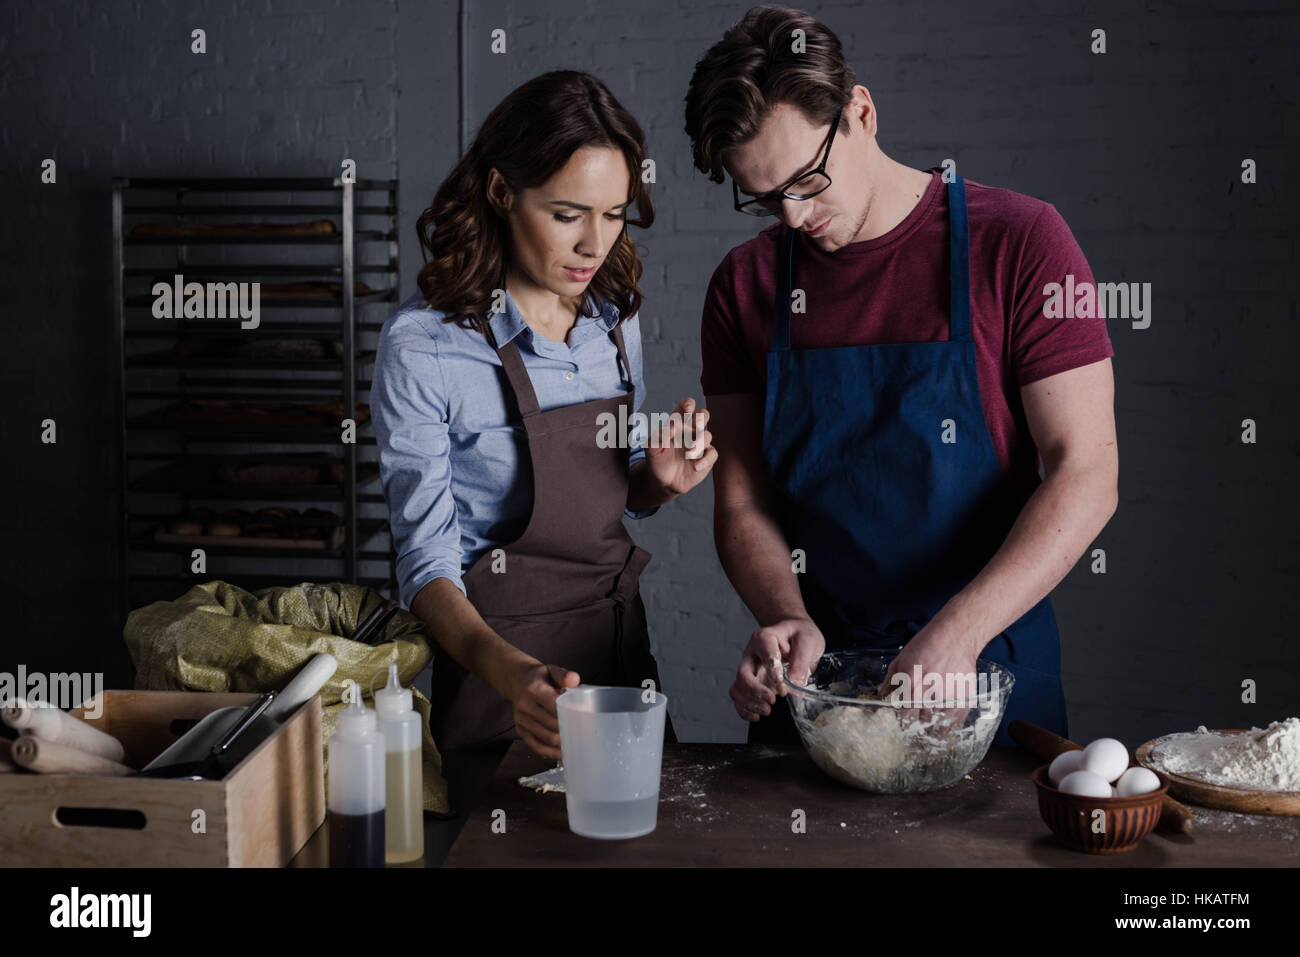 Bakers discussing ingredients - Stock Image